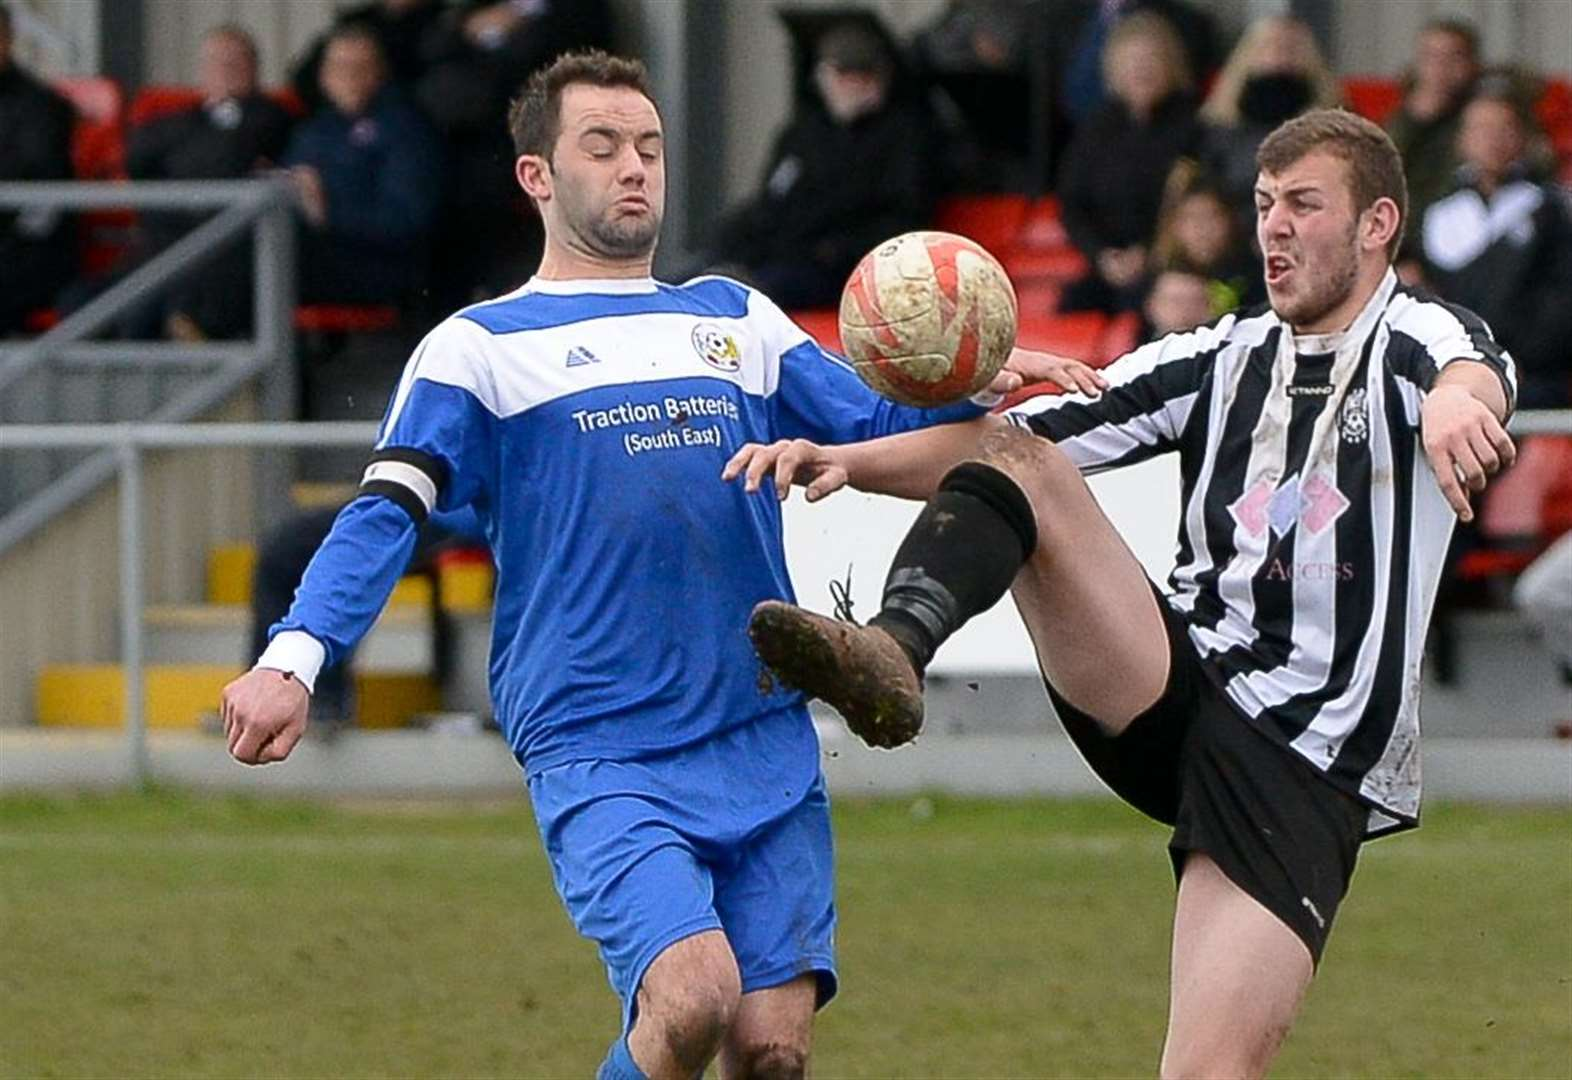 Fewer new faces seen as a good thing for Cornard Utd